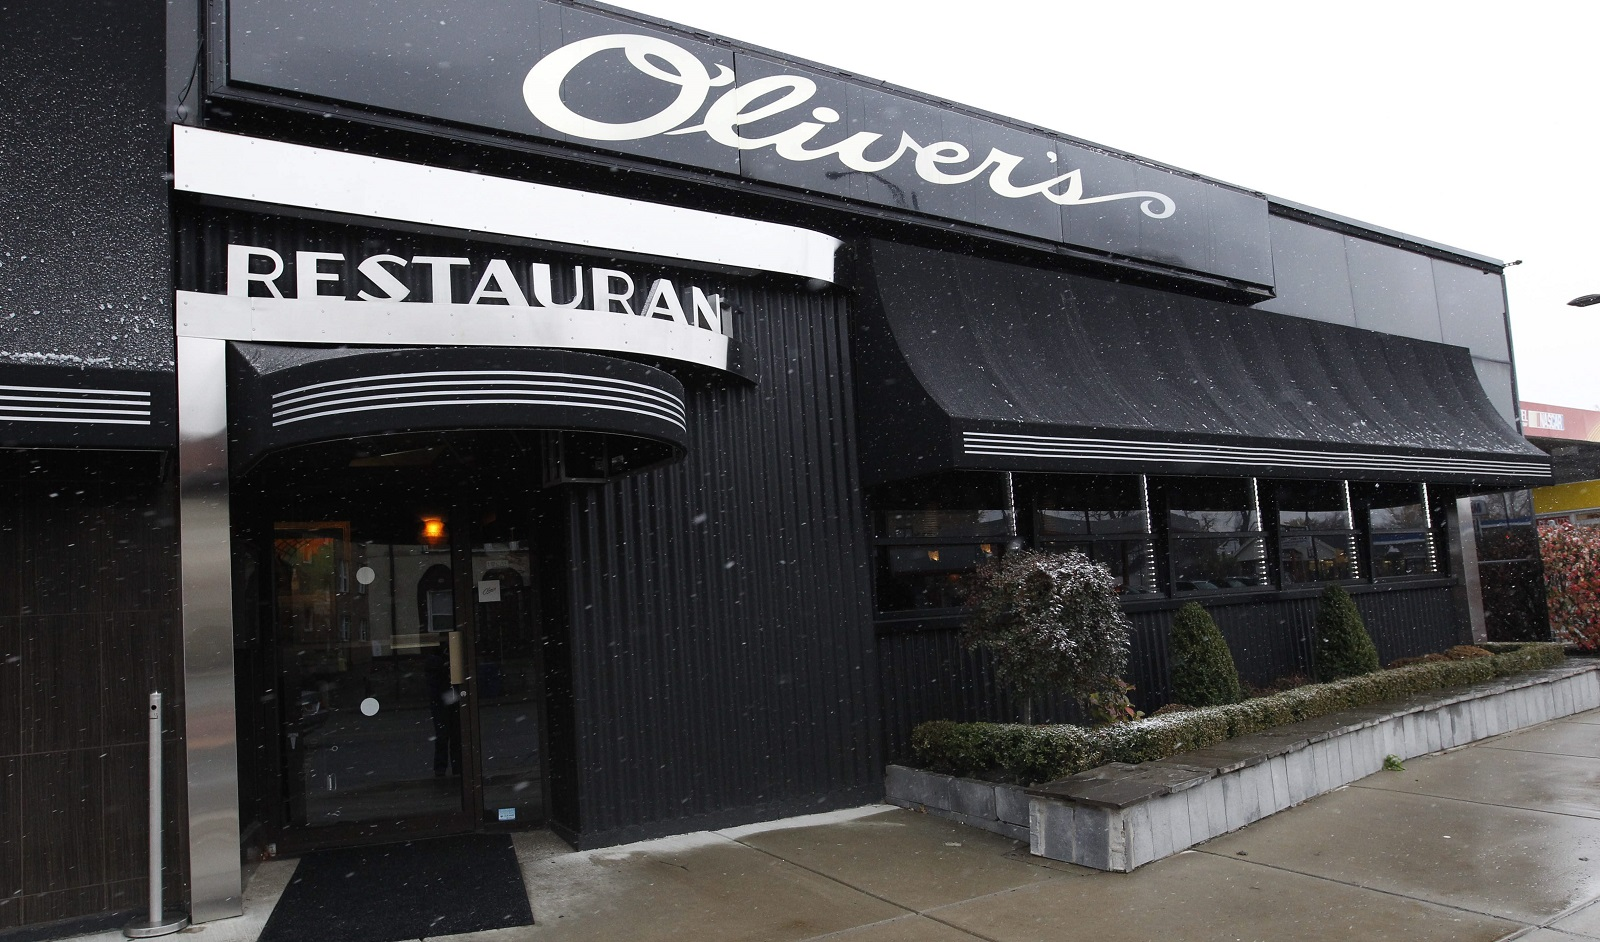 Oliver's Restaurant has one of the best reputations -- both for its food and its training of future culinary stars -- among fine-dining eateries in Western New York. (Sharon Cantillon/Buffalo News file photo)